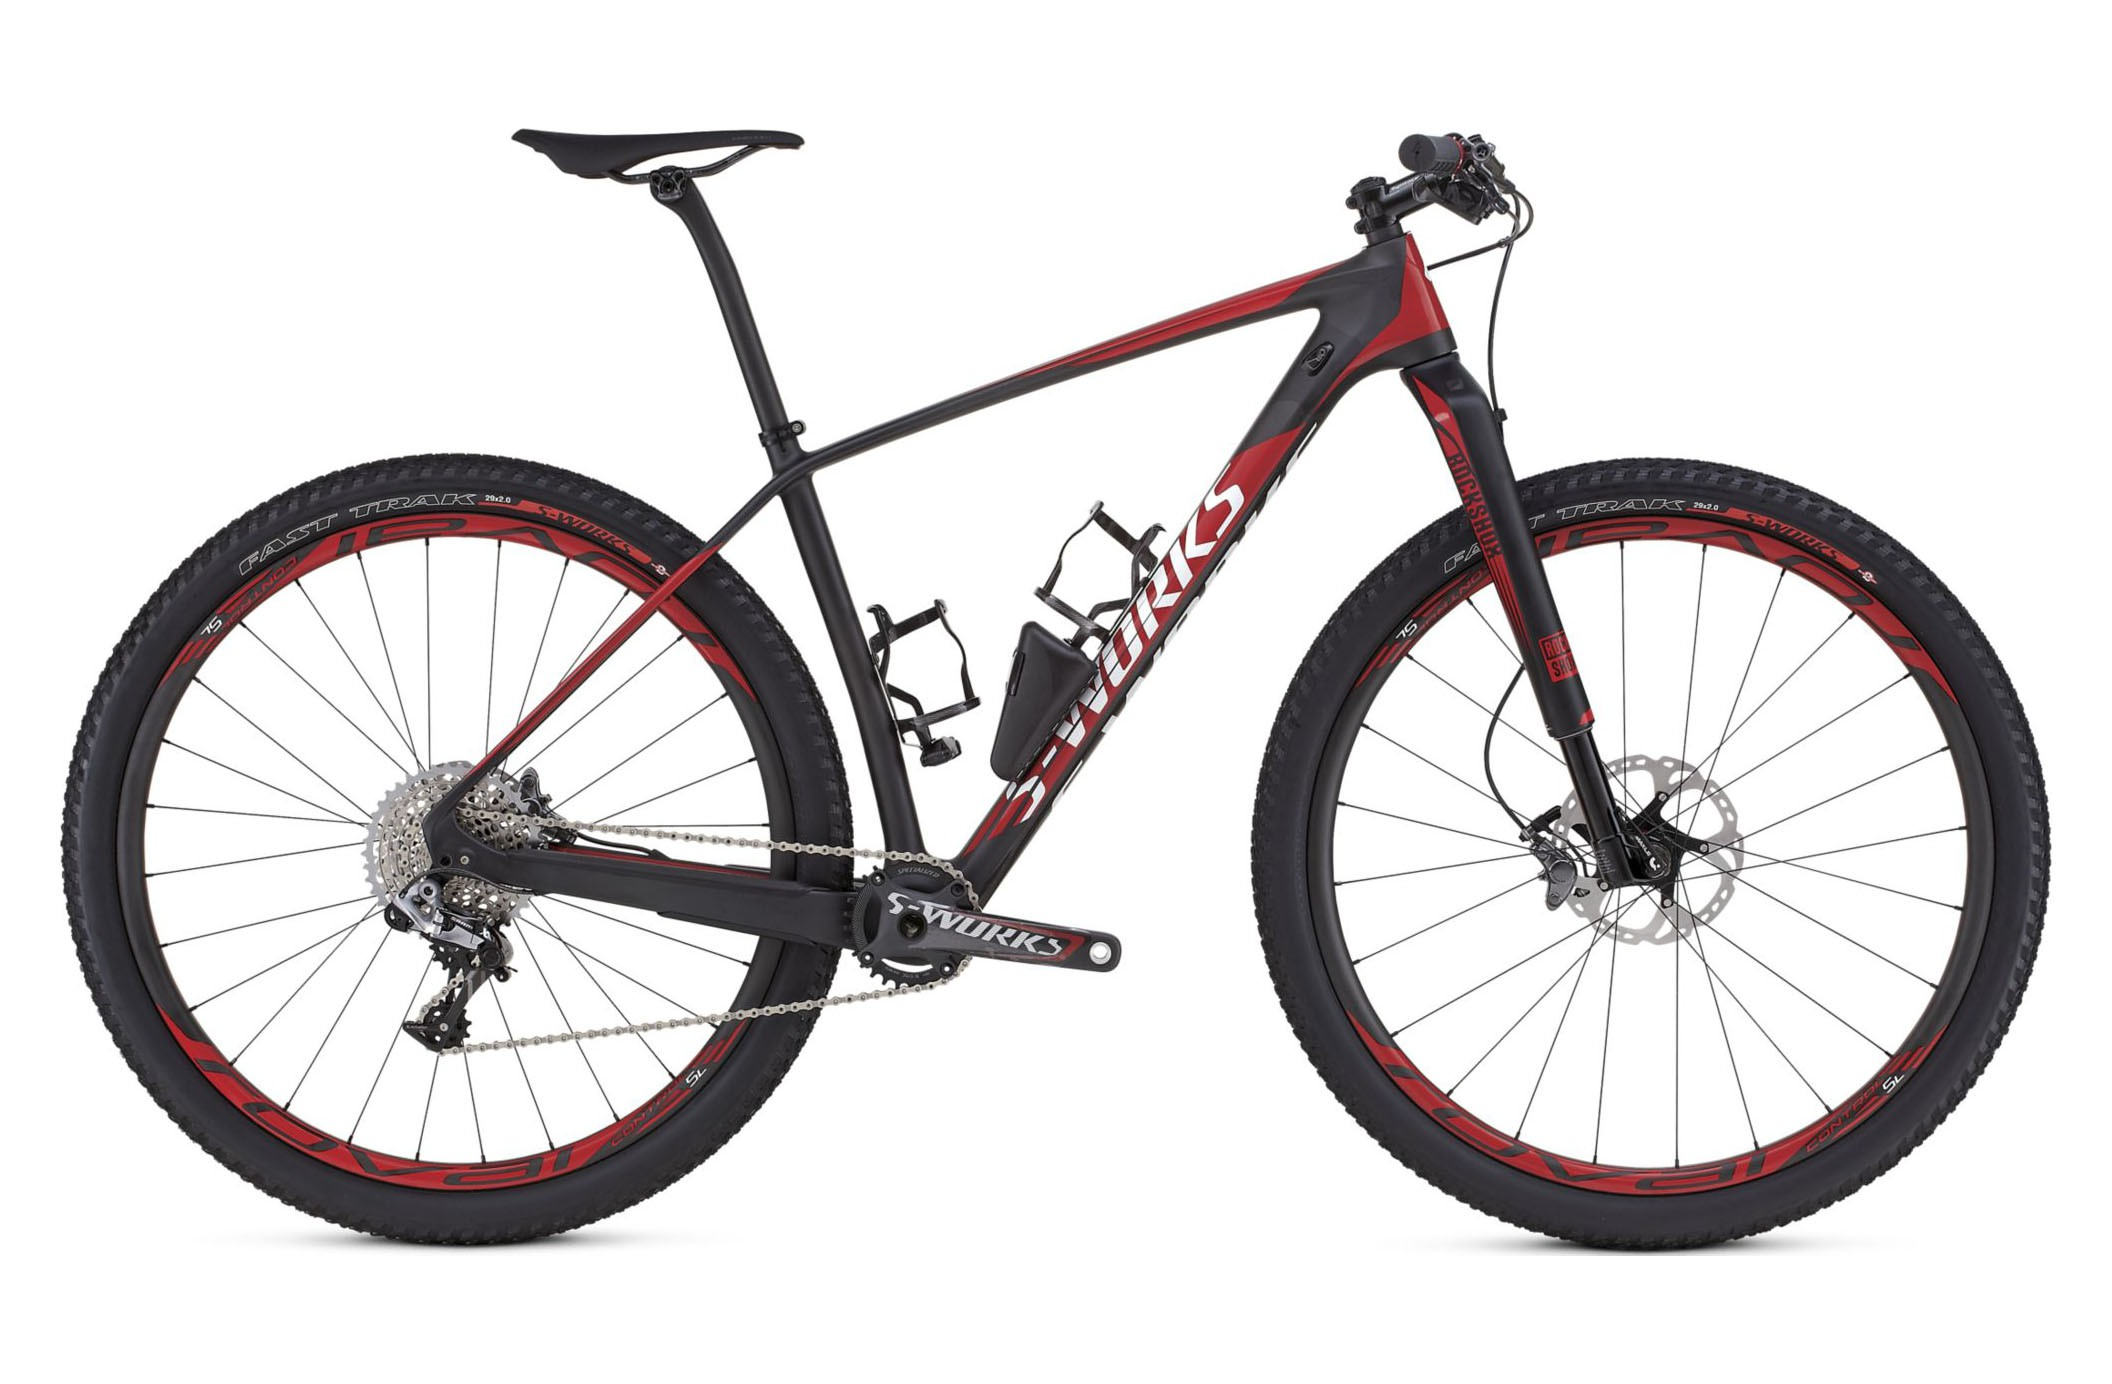 Горный велосипед Specialized S-Works Stumpjumper 29 World Cup (2016)